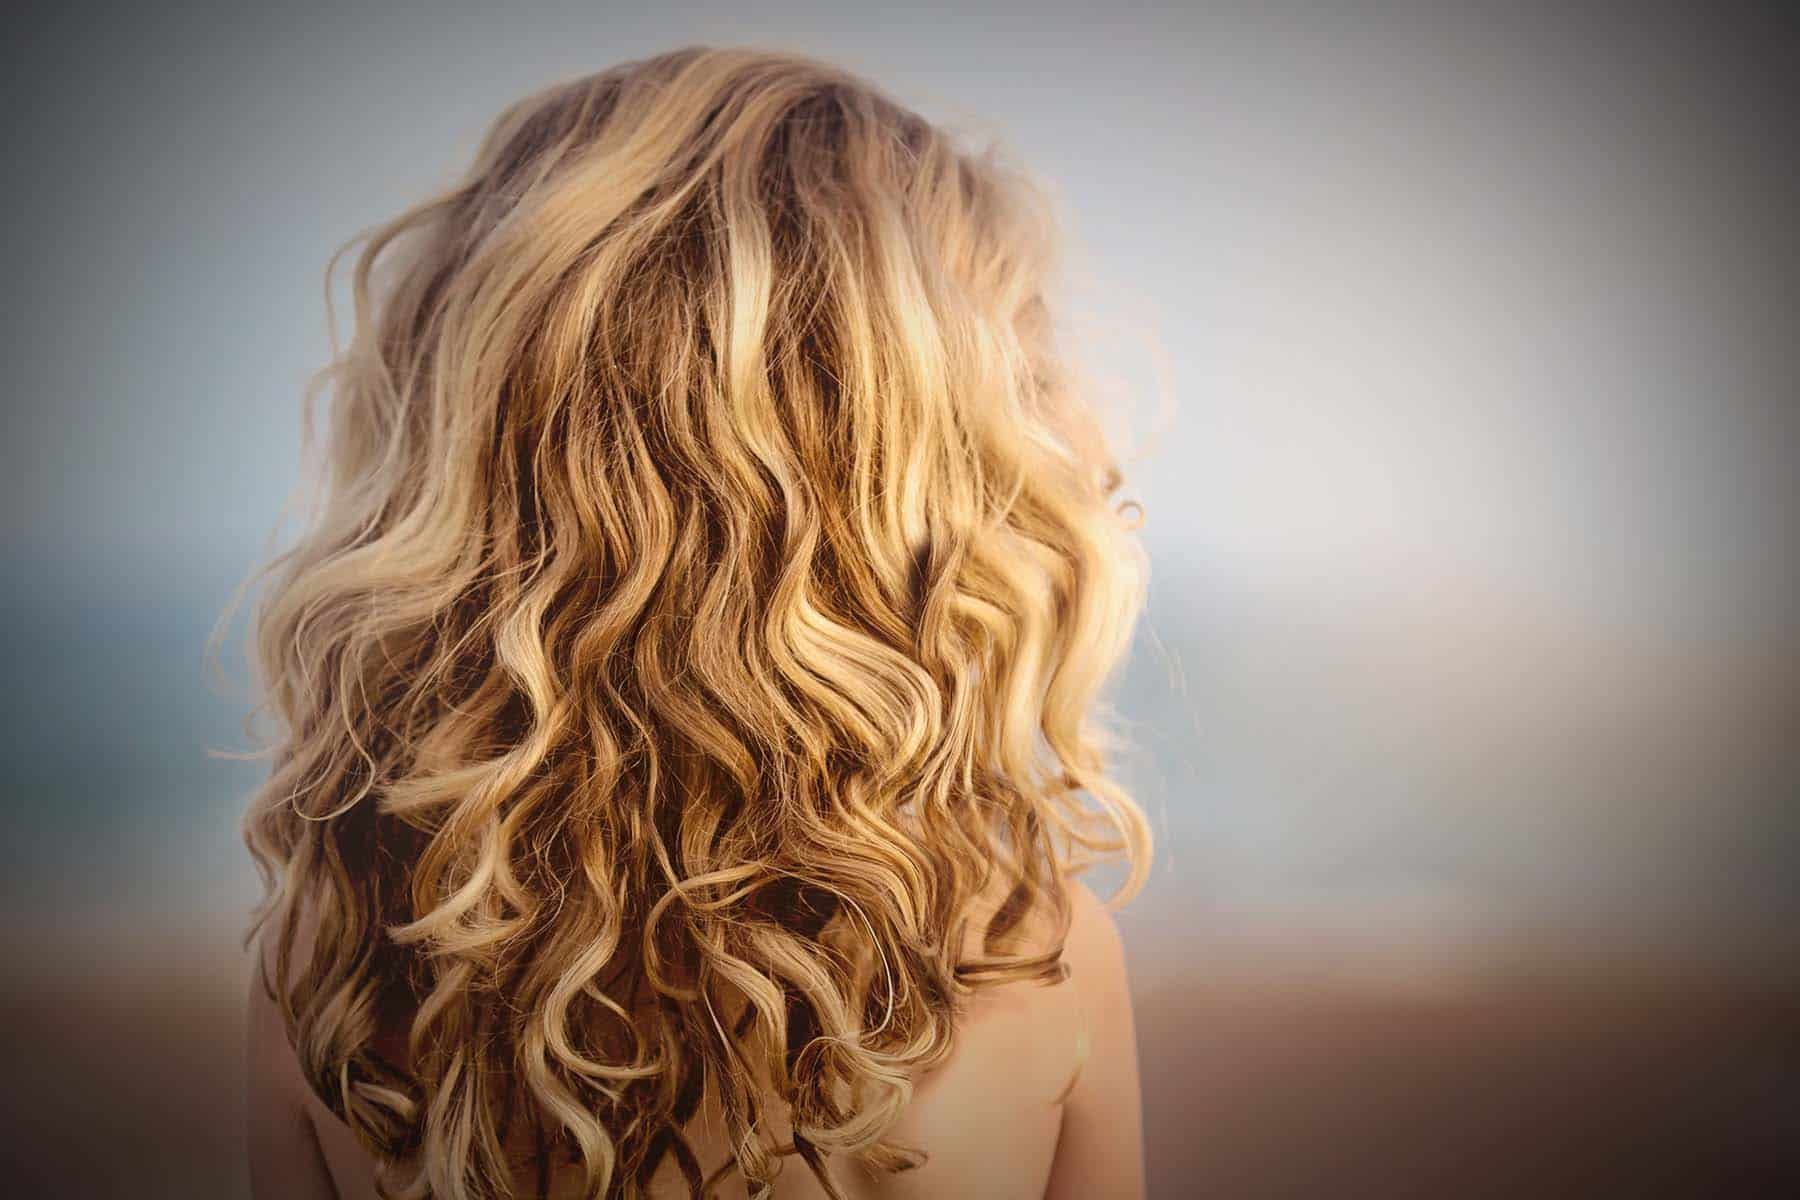 How Much Does A Loose Spiral Perm Cost On An Average The Loose Spiral Perm Costs Anywhere From 89 To 200 A Spiral Perm Is Just What You Require To Append